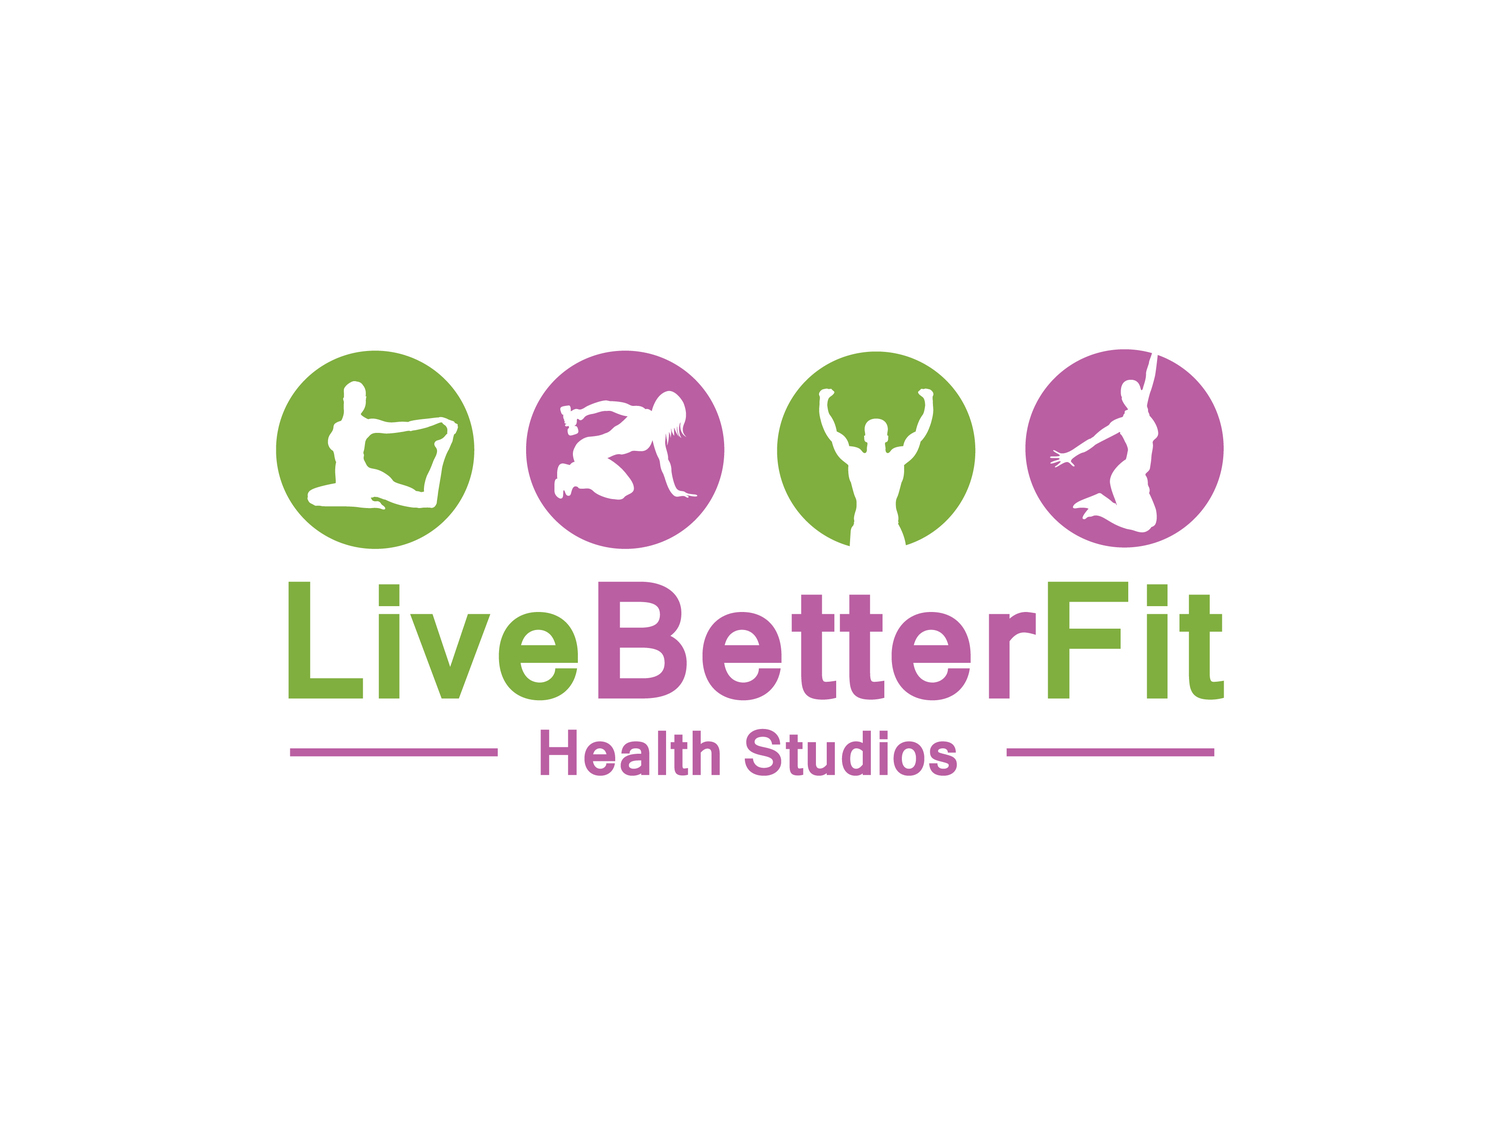 Live Better Fit